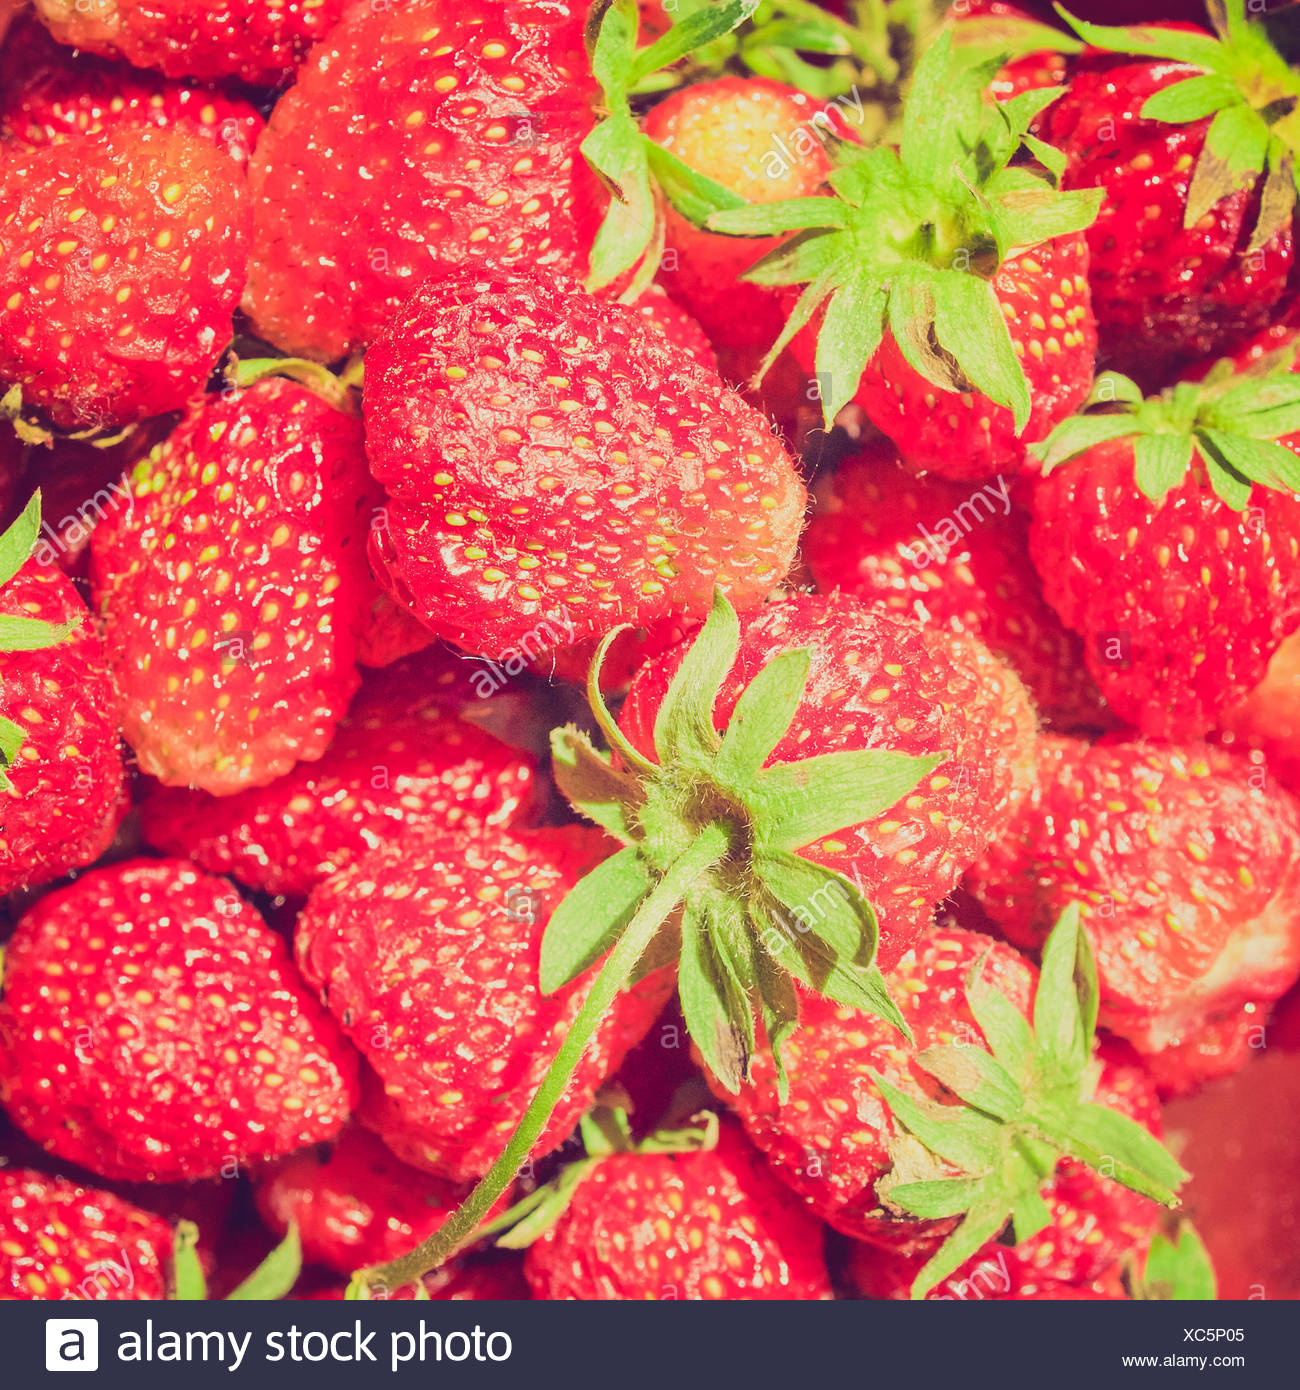 What is useful strawberries 73